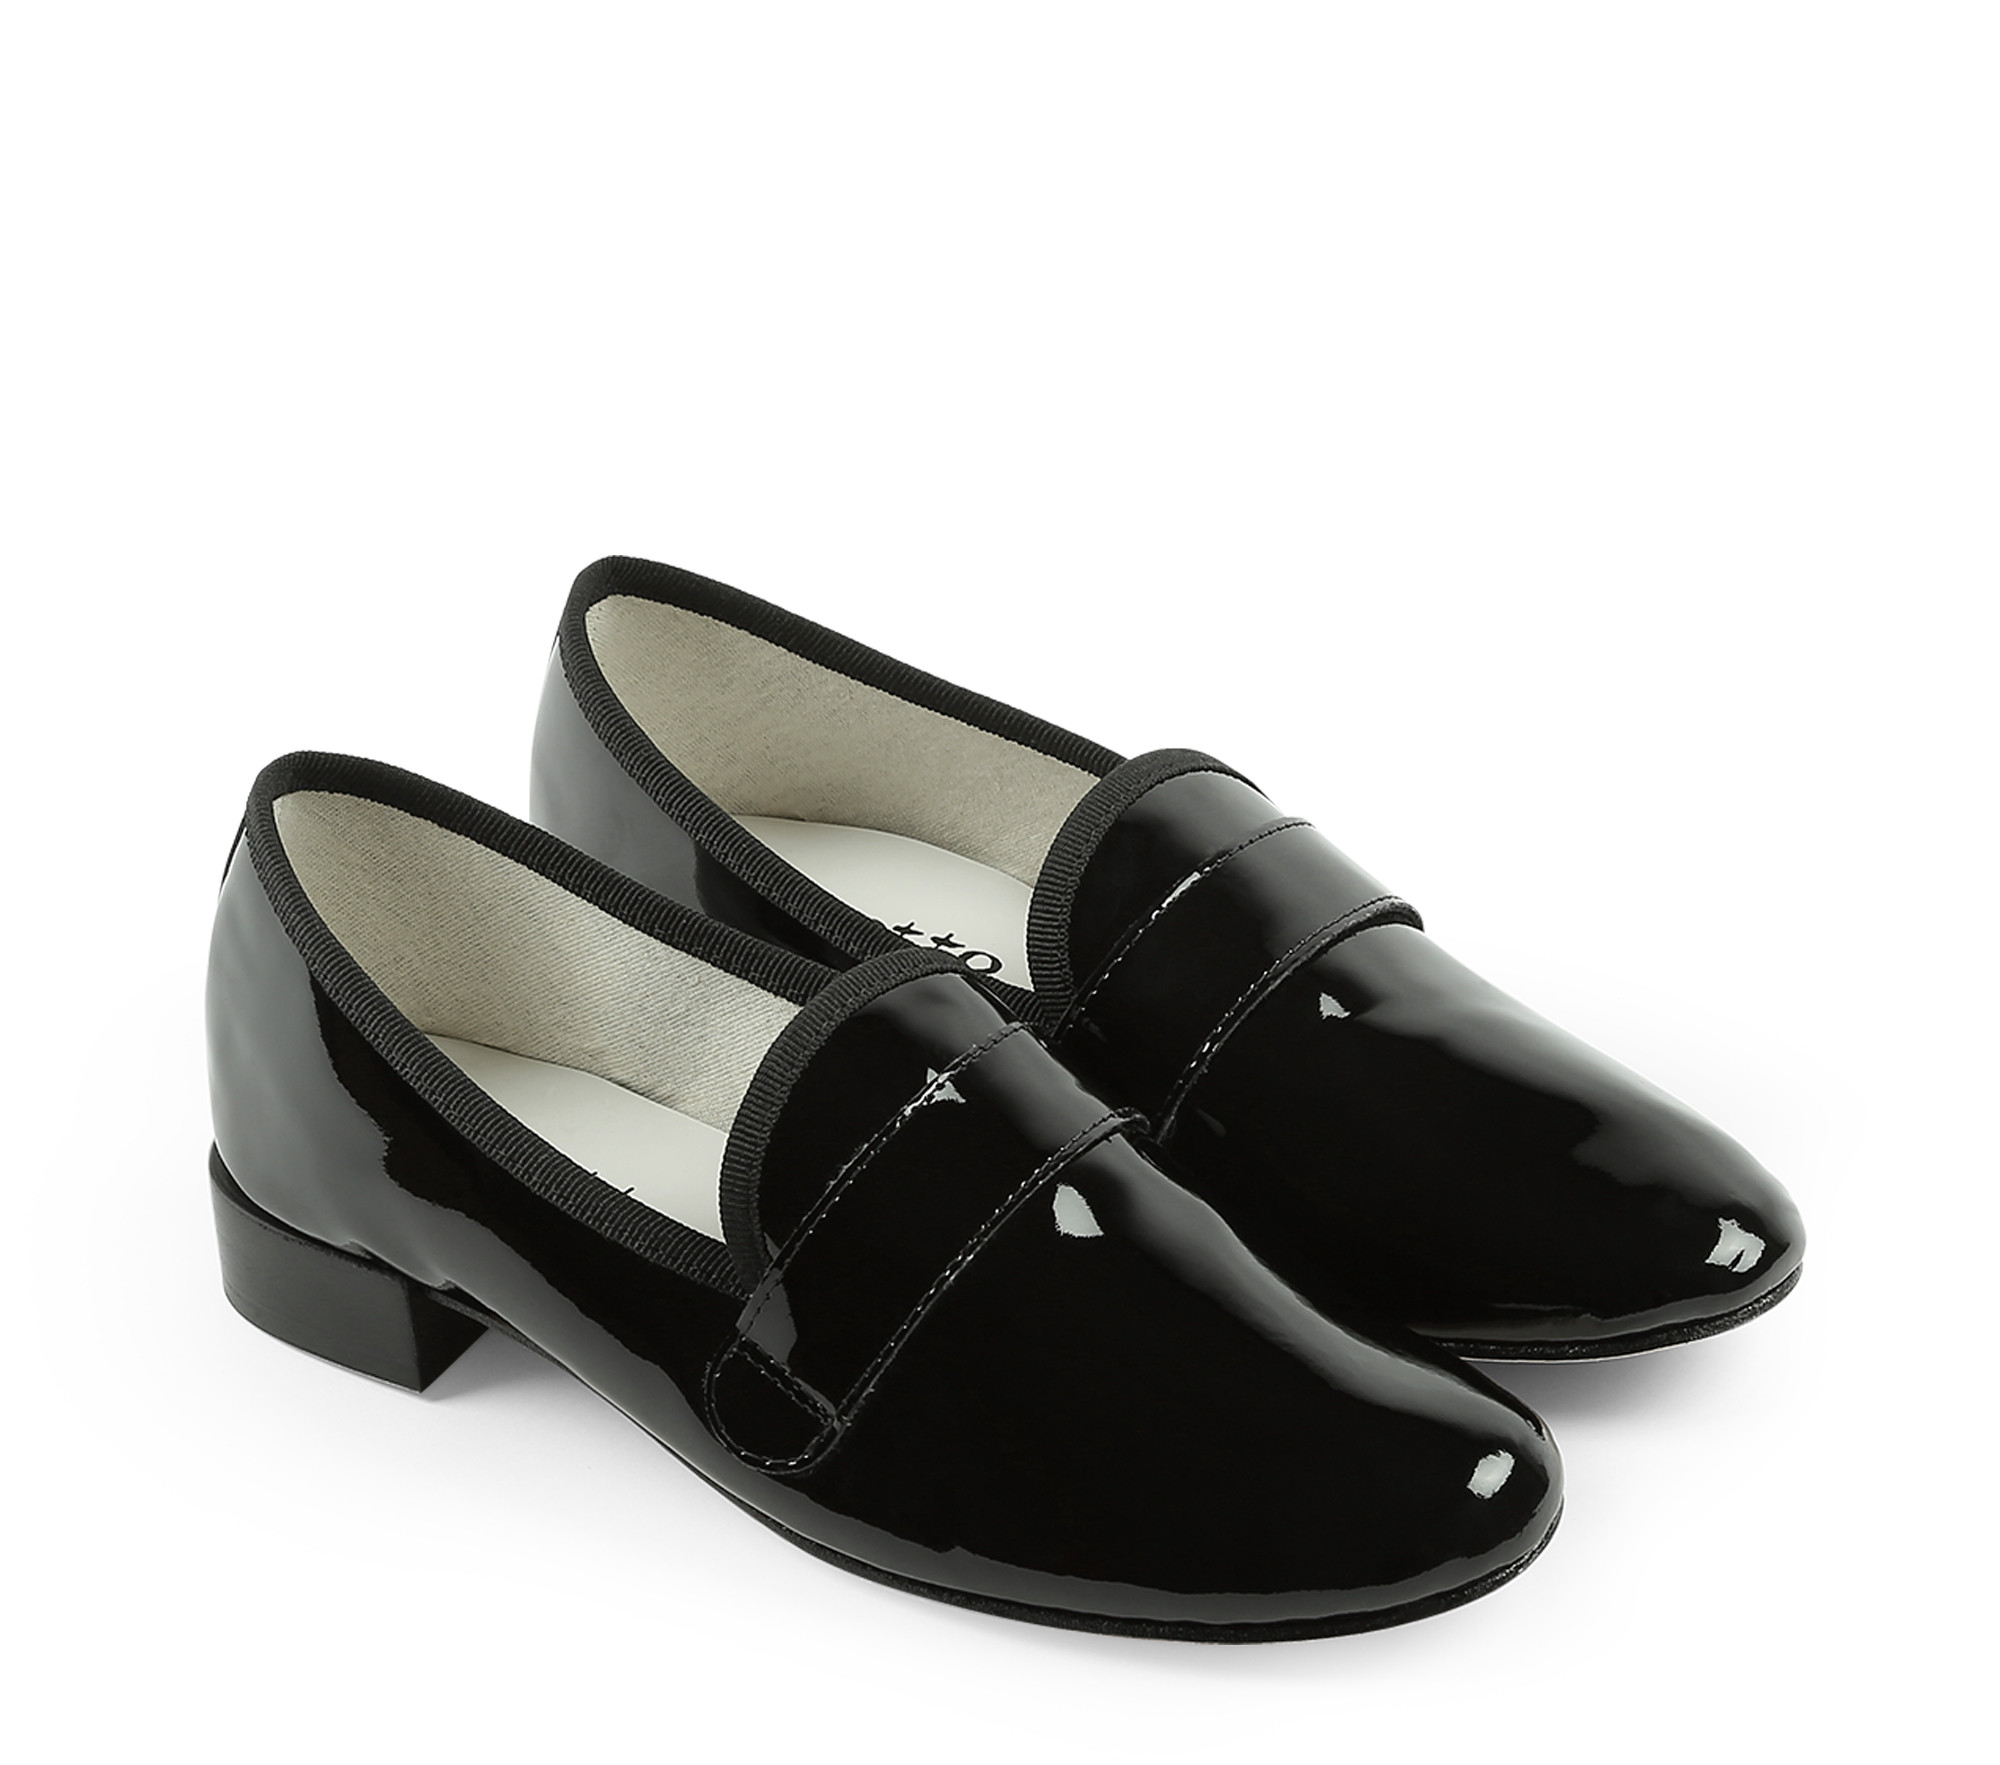 Michael loafer